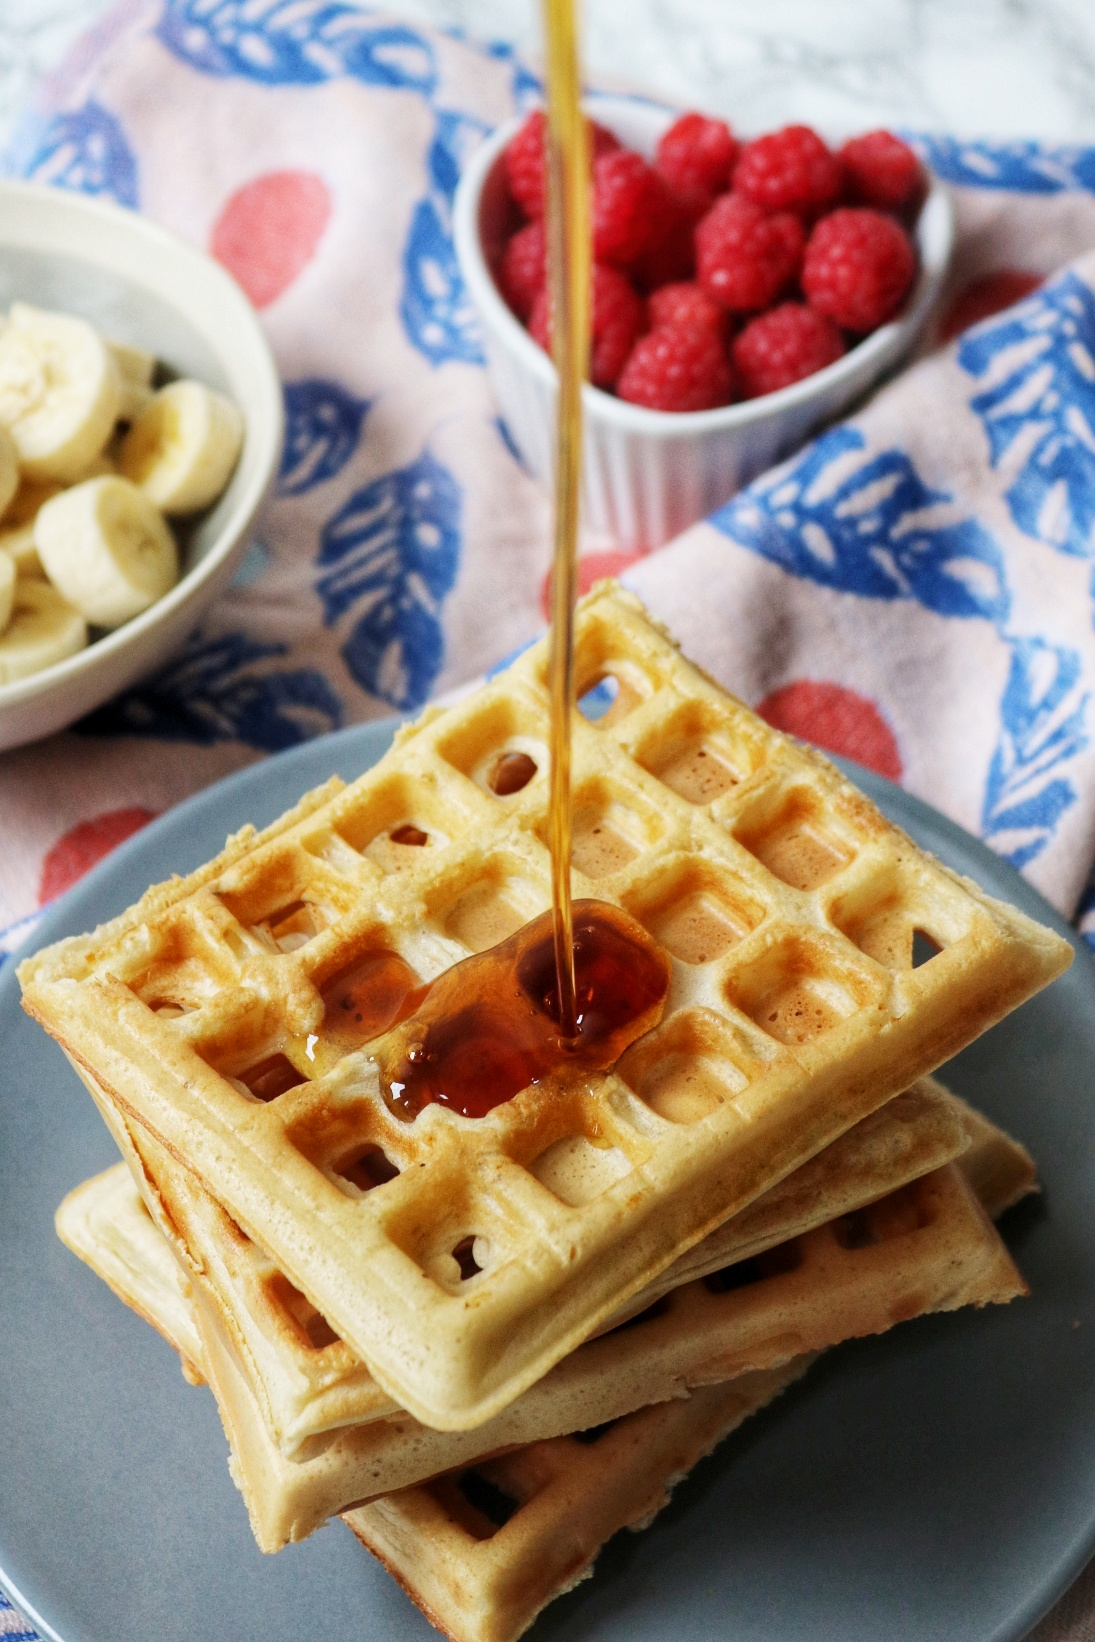 Sourdough waffles drizzled with maple syrup